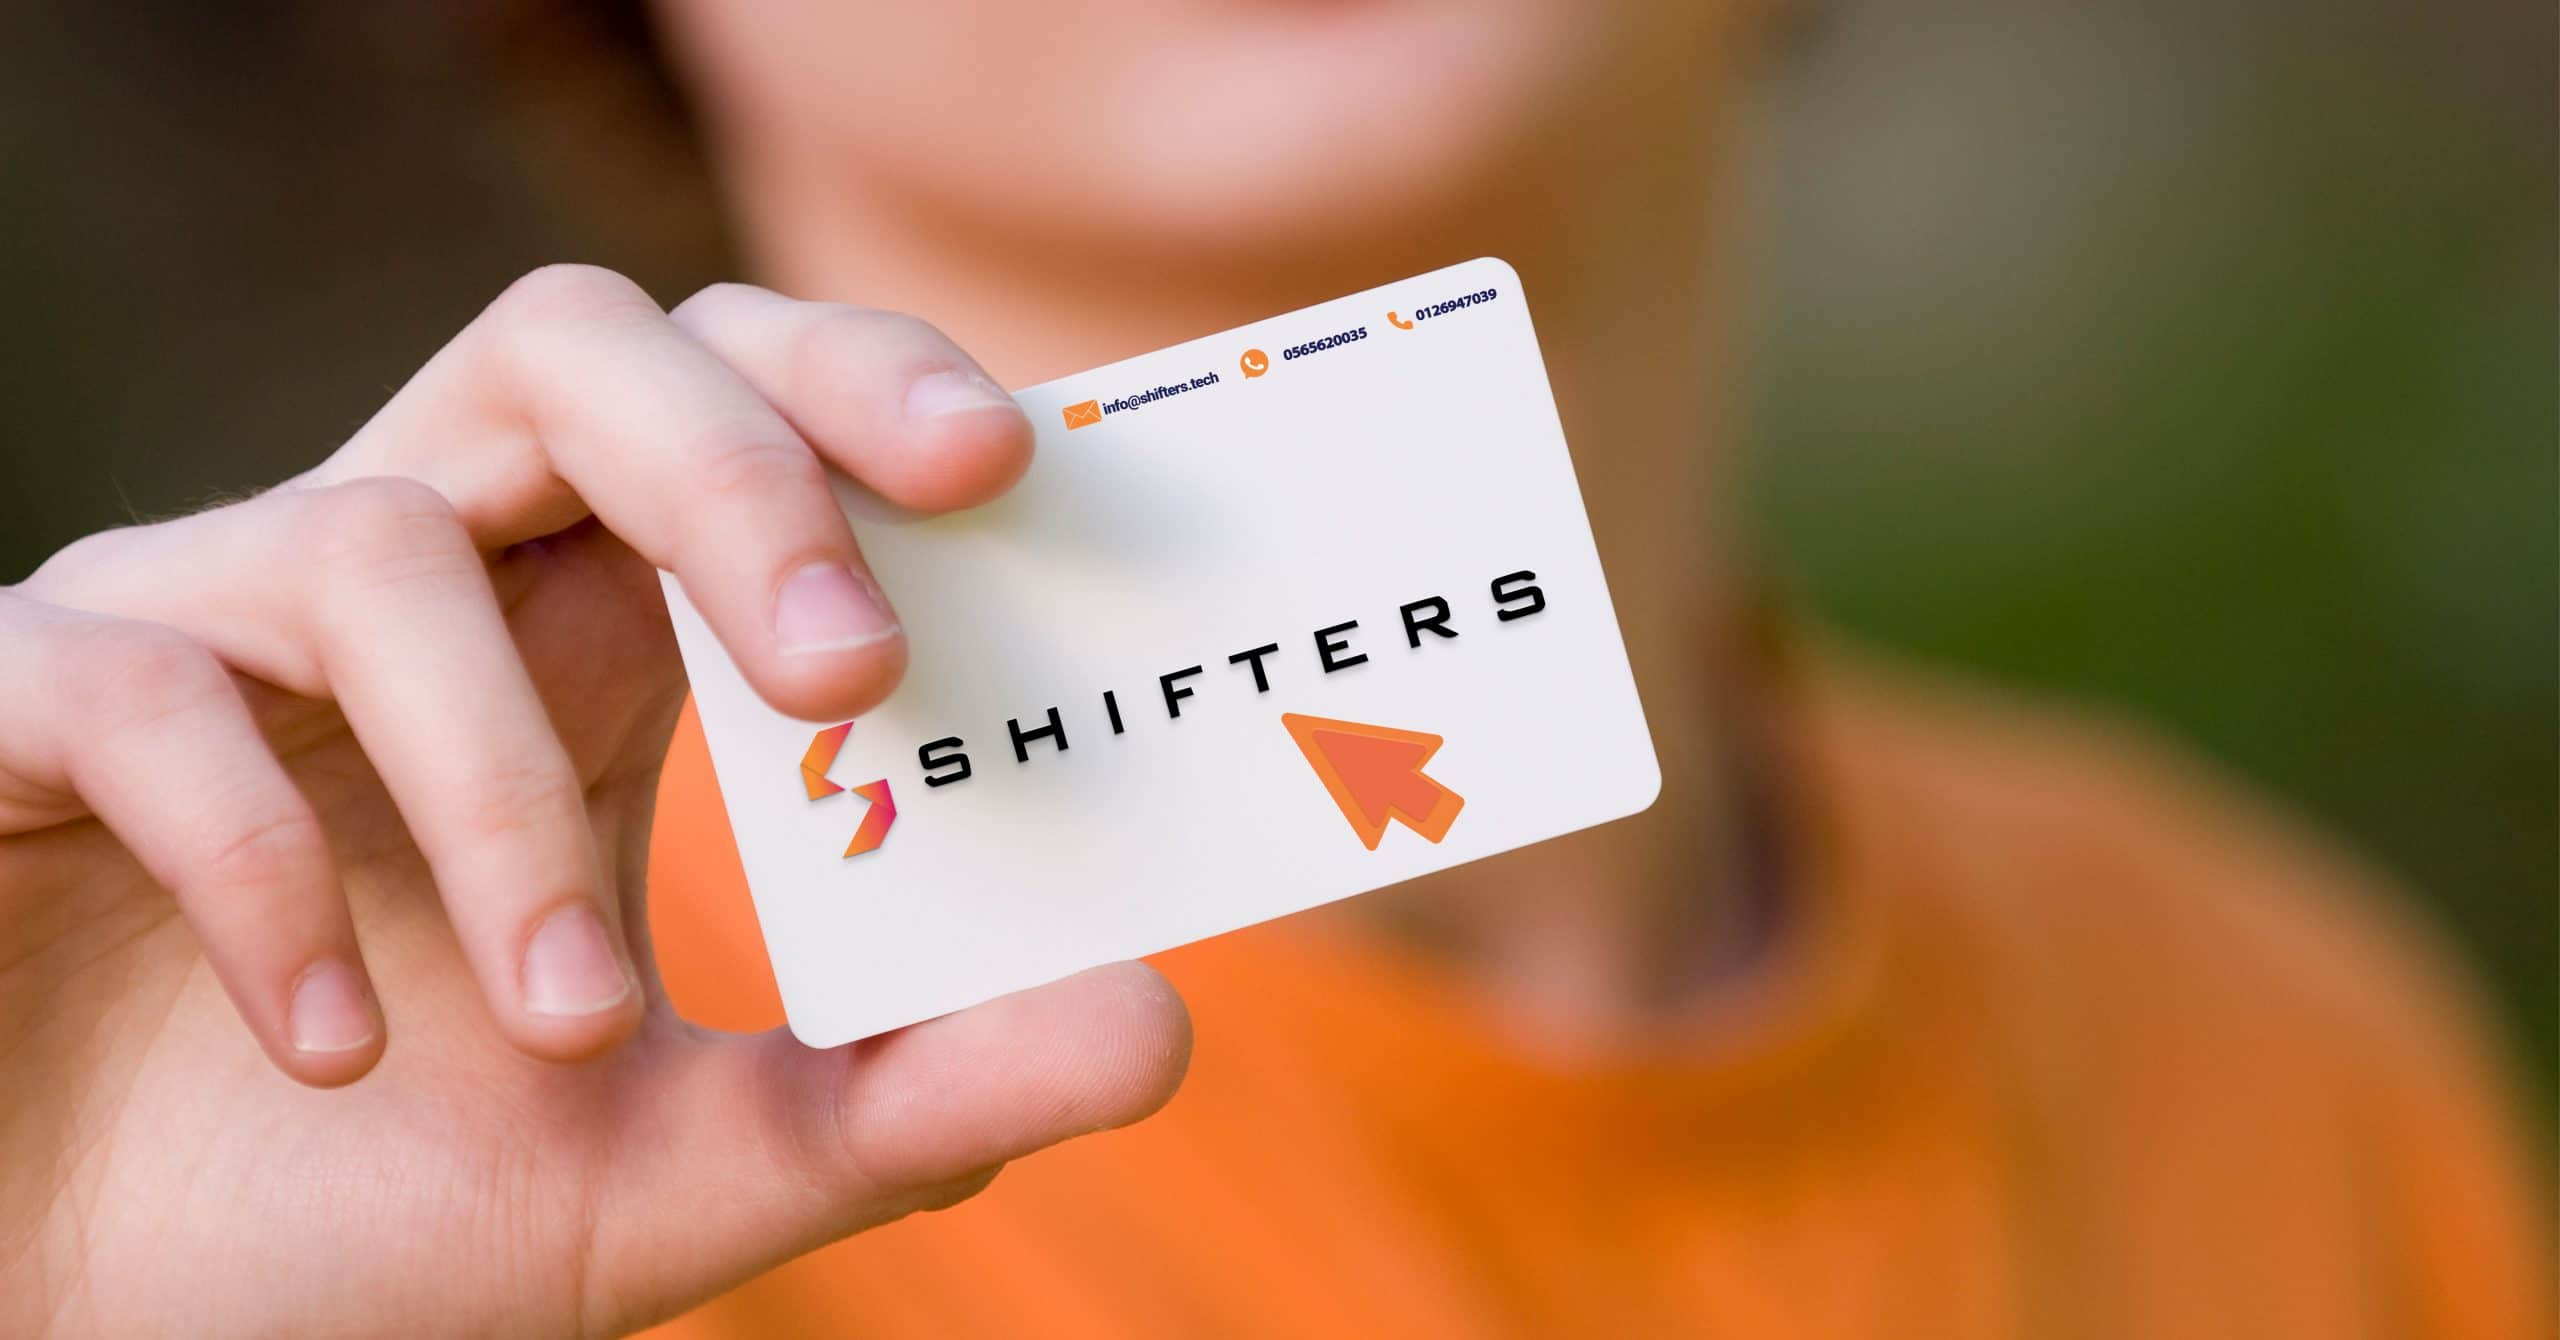 who are shifters.tech